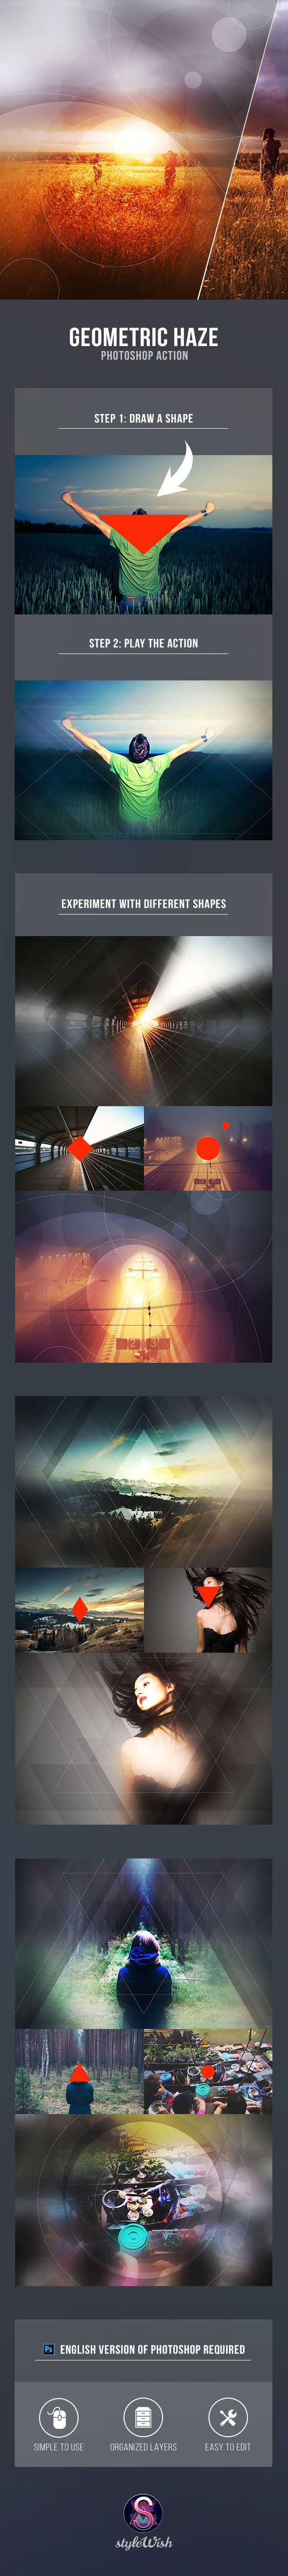 Geometric Haze Photoshop Action - Photo Effects Actions